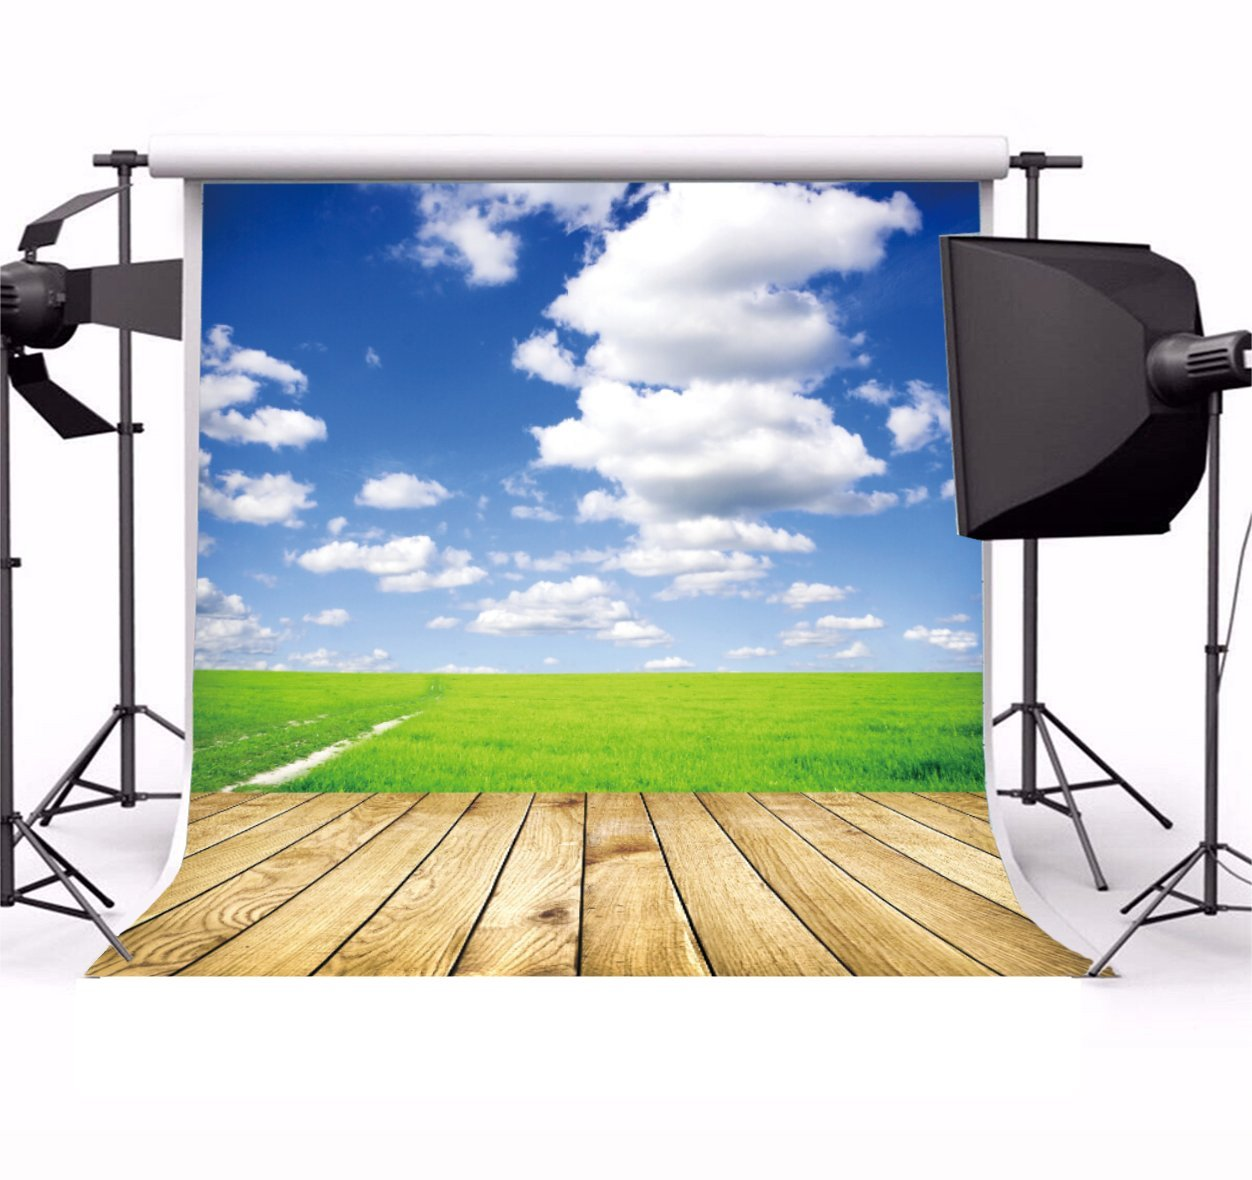 Green Field Sky Grey Clouds Wood Grass Trees Plank background polyester or Vinyl cloth Computer print wall backdrop